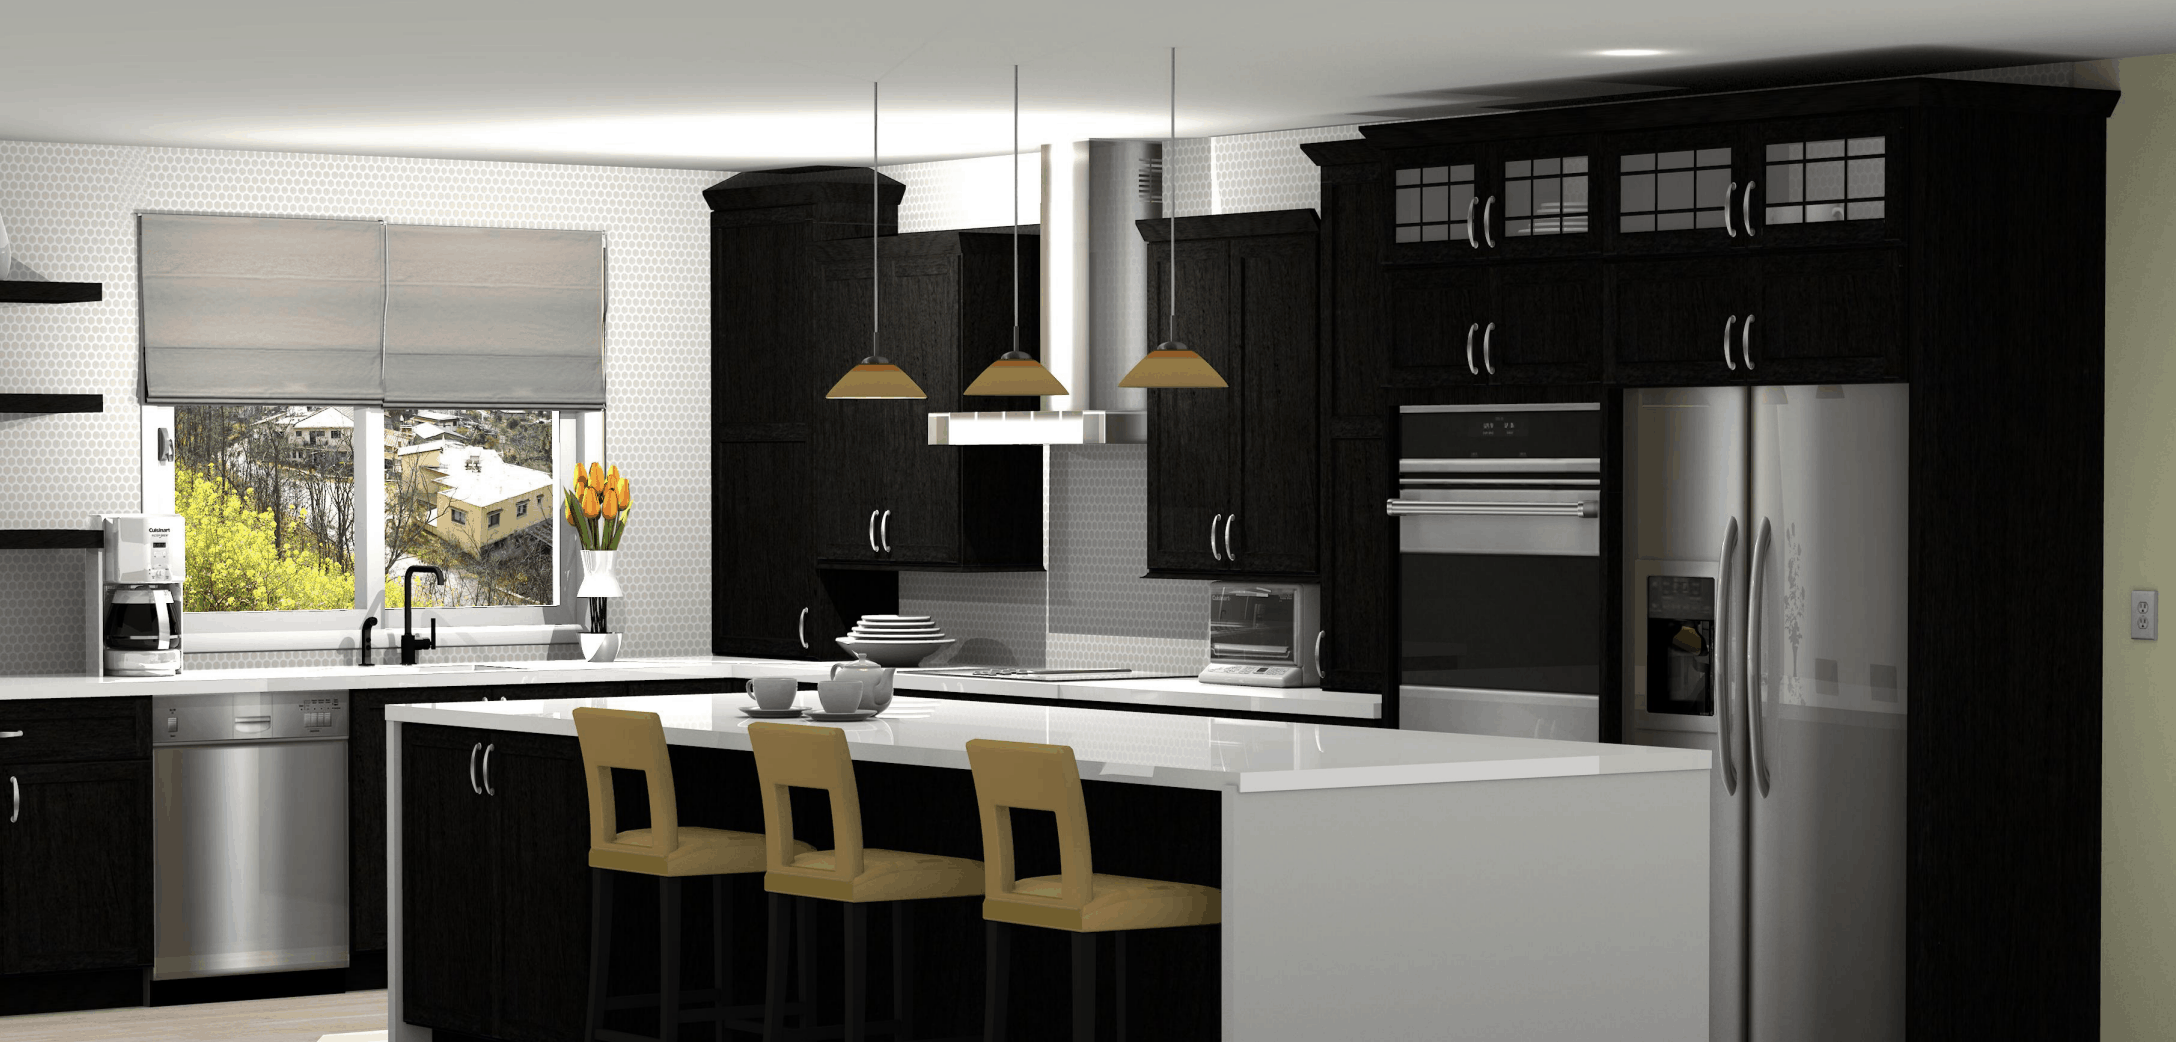 Discover The 16 Best Kitchen Design Software Options In 2018 Free Paid: kitchen design rendering software